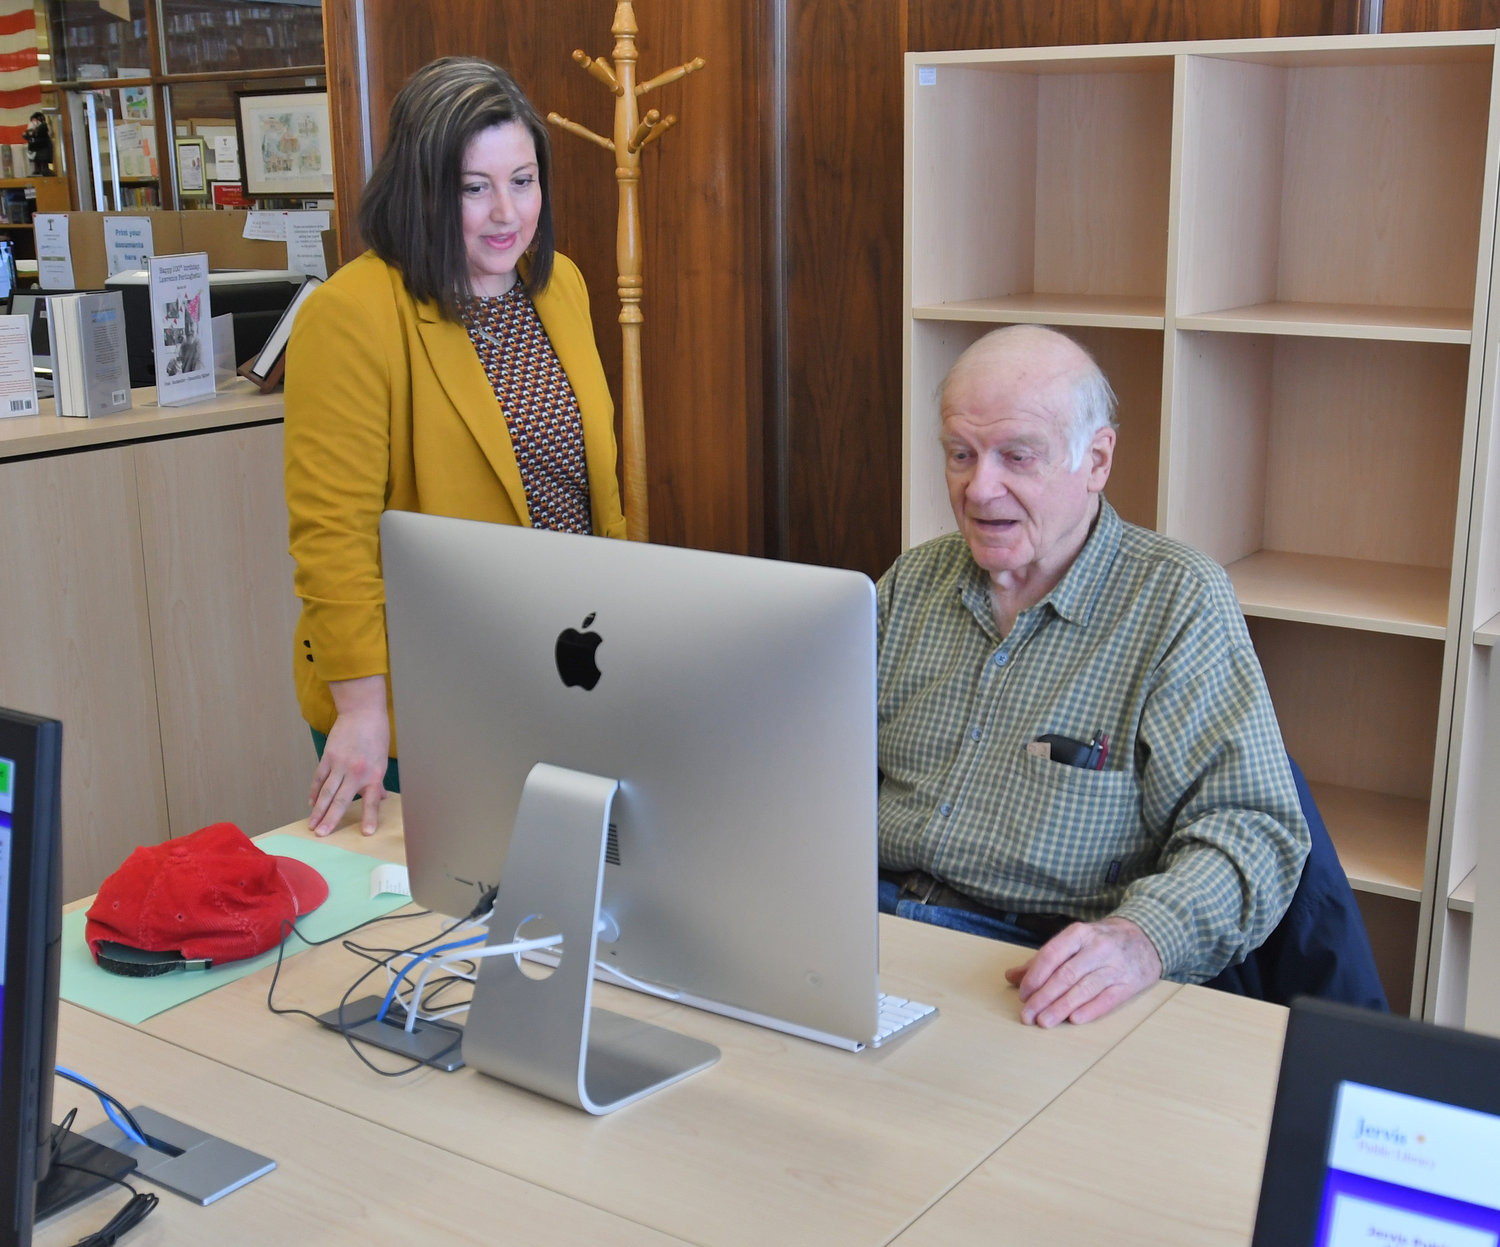 HELPING HAND — Jervis Pubilc Library Assistant Director Kari Tucker helps Jim Small navigate the net in the library's new computer lab. In addition to all new computer equipment, the library held 50 drop-in tech help sessions in 2018, providing 148 patrons with one-on-one tech assistance. Story, page 2.